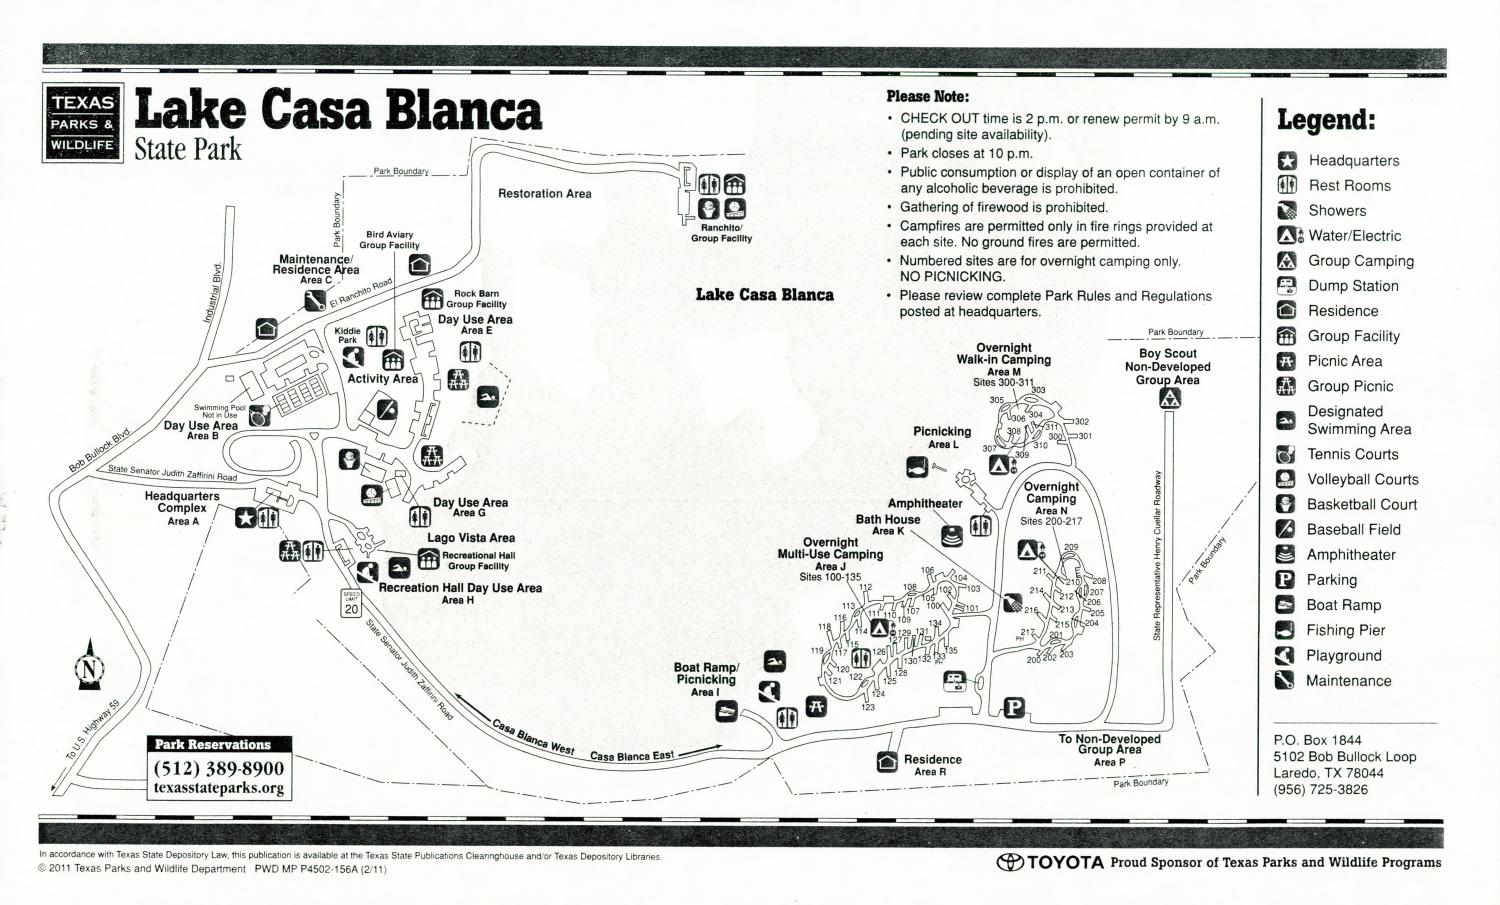 Lake Casa Blanca State Park, Map of the Lake Casa Blanca State Park outlining hiking trails and highlighting activities, facilities, and other features such as bathrooms, lodgings, water/electric, etc. It also contains general information for the park and for the Texas Parks and Wildlife Department. Additionally, there are various advertisements, including one with information about the Texas State Parks Pass.,